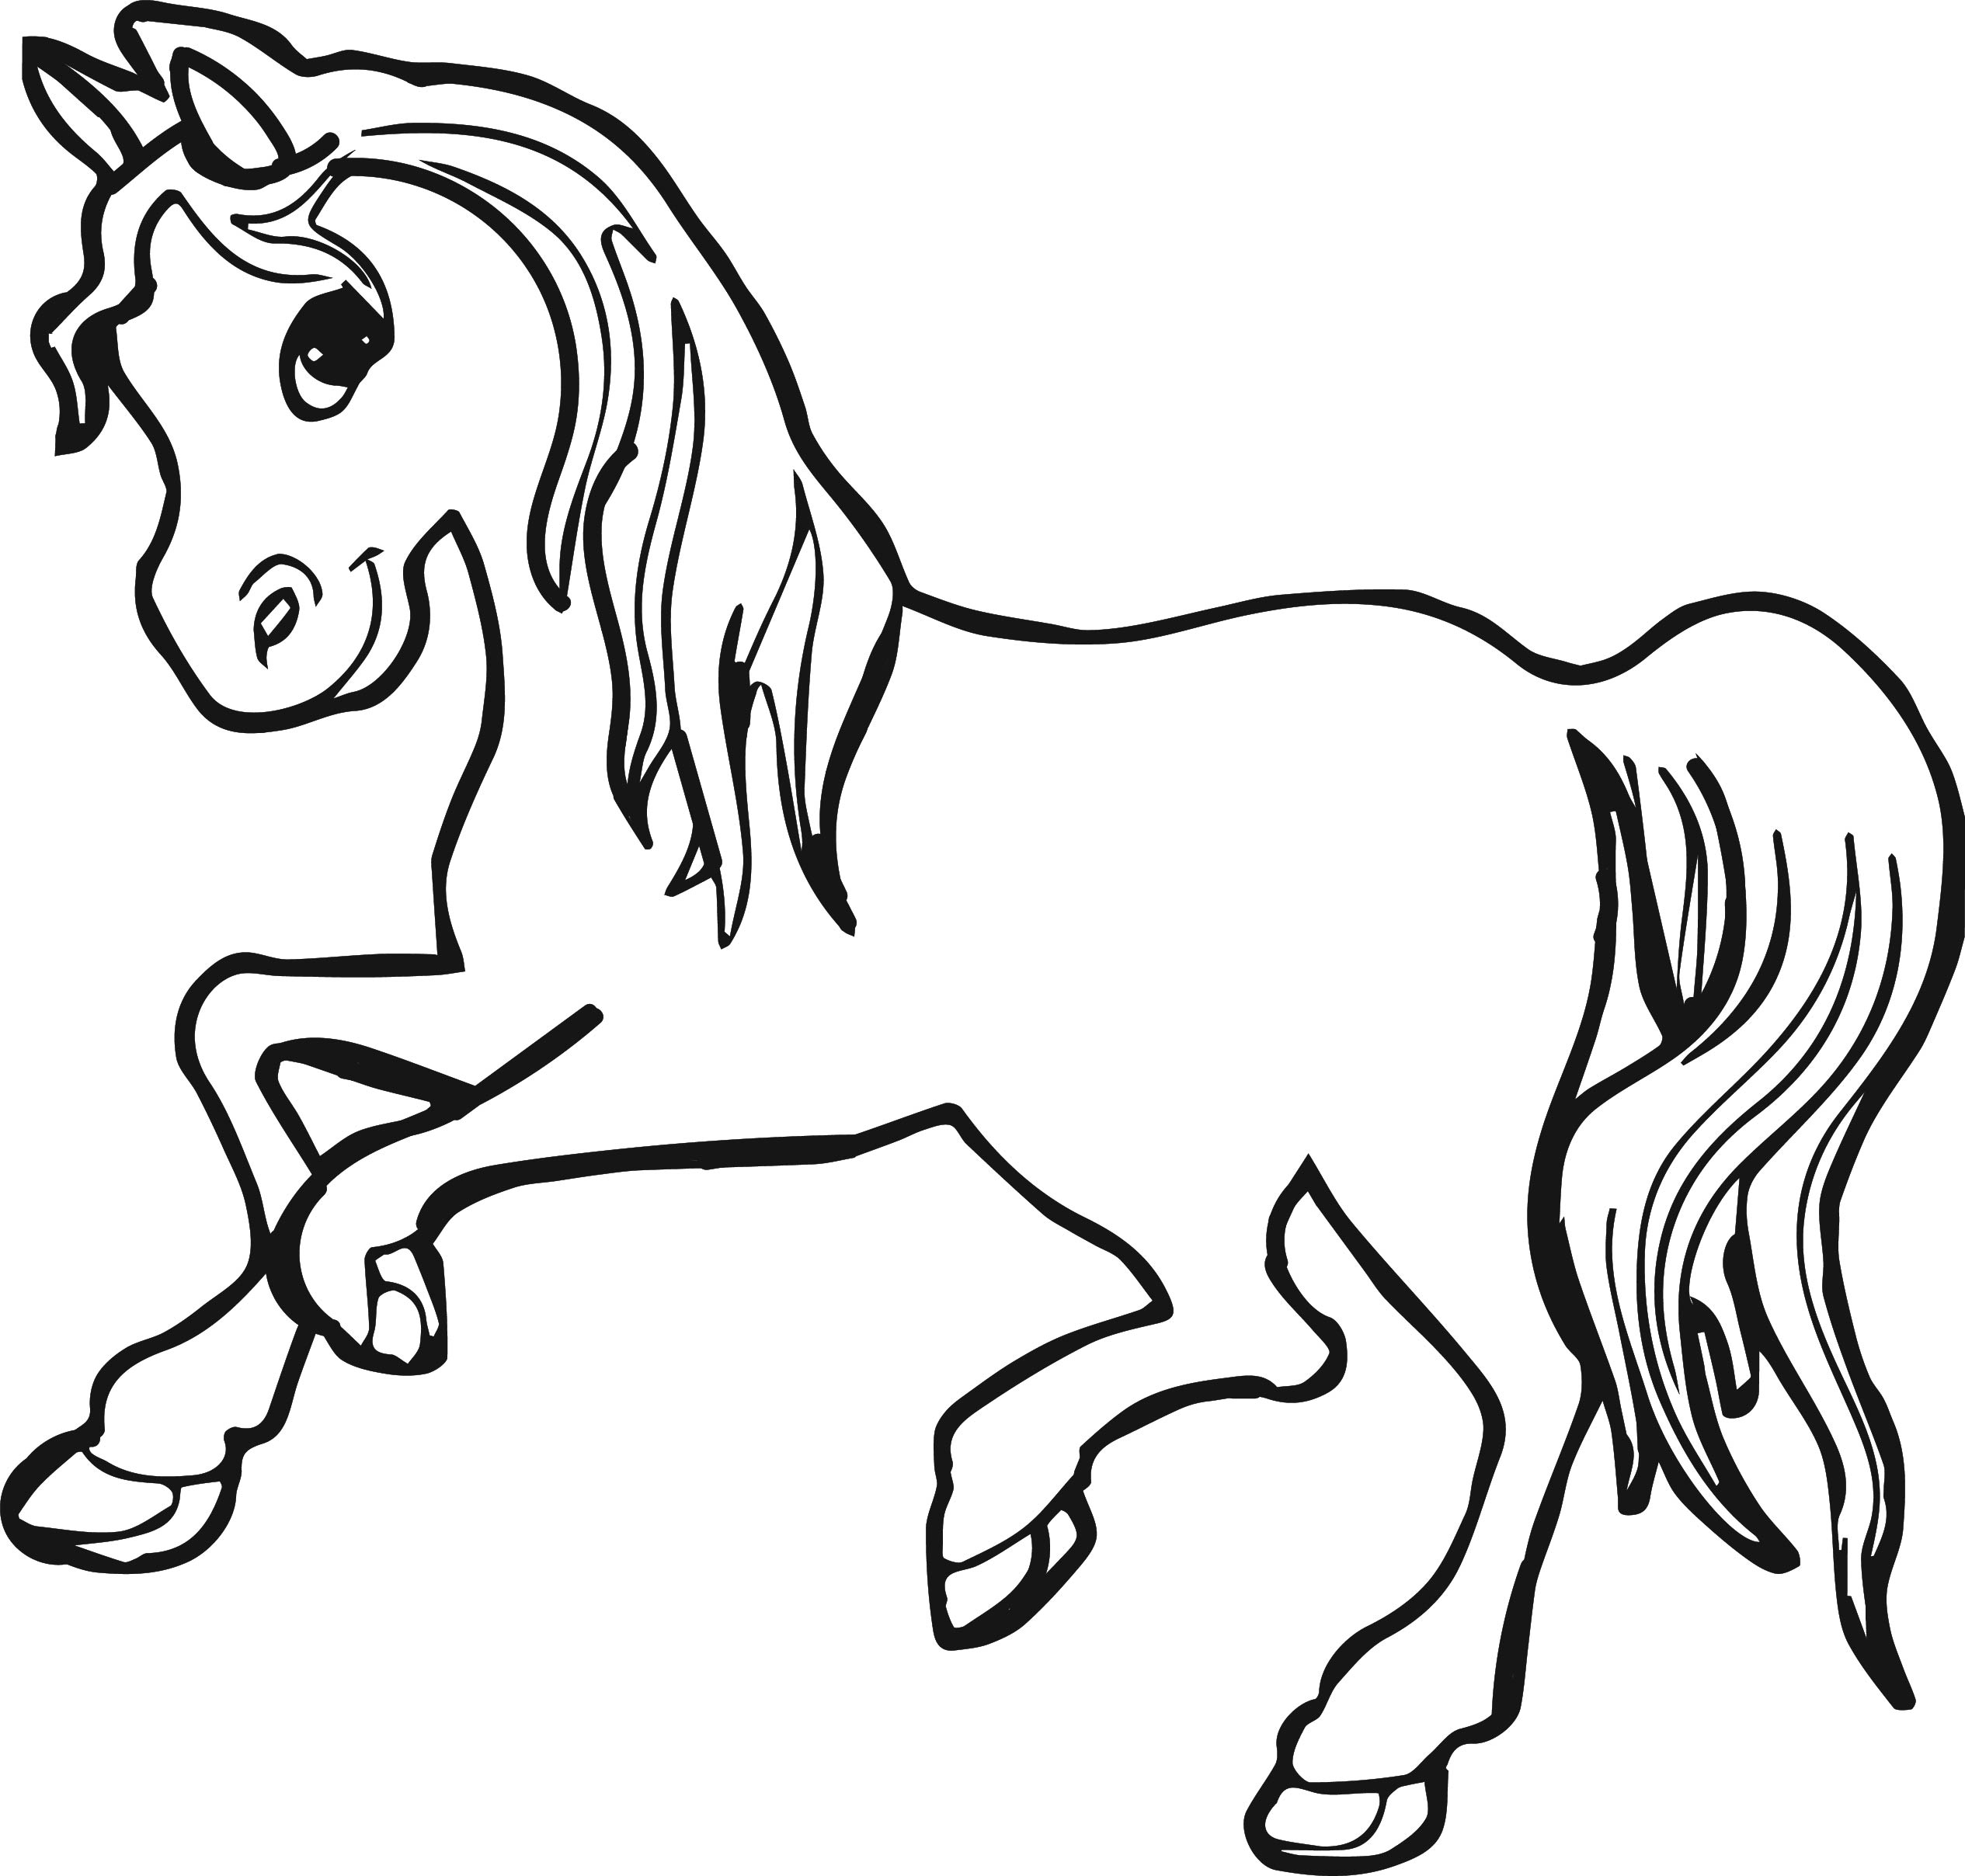 free printable coloring pages of horses rearing horse coloring pages at getdrawings free download of free printable coloring horses pages